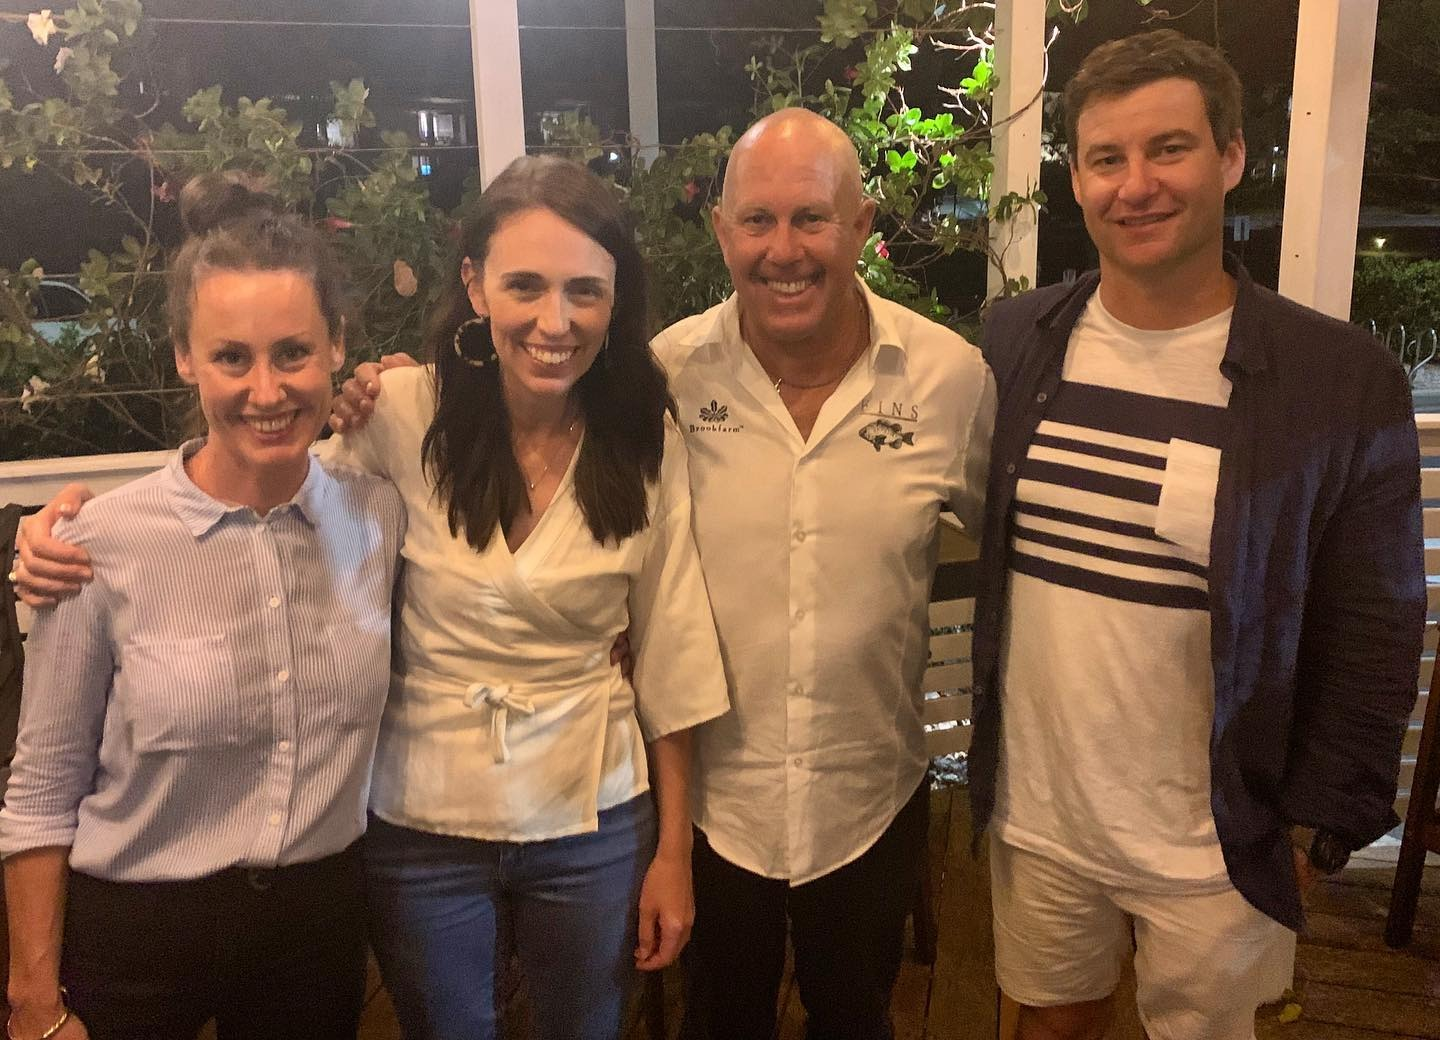 'Don't let her leave': Aussies beg Ardern to take over as PM